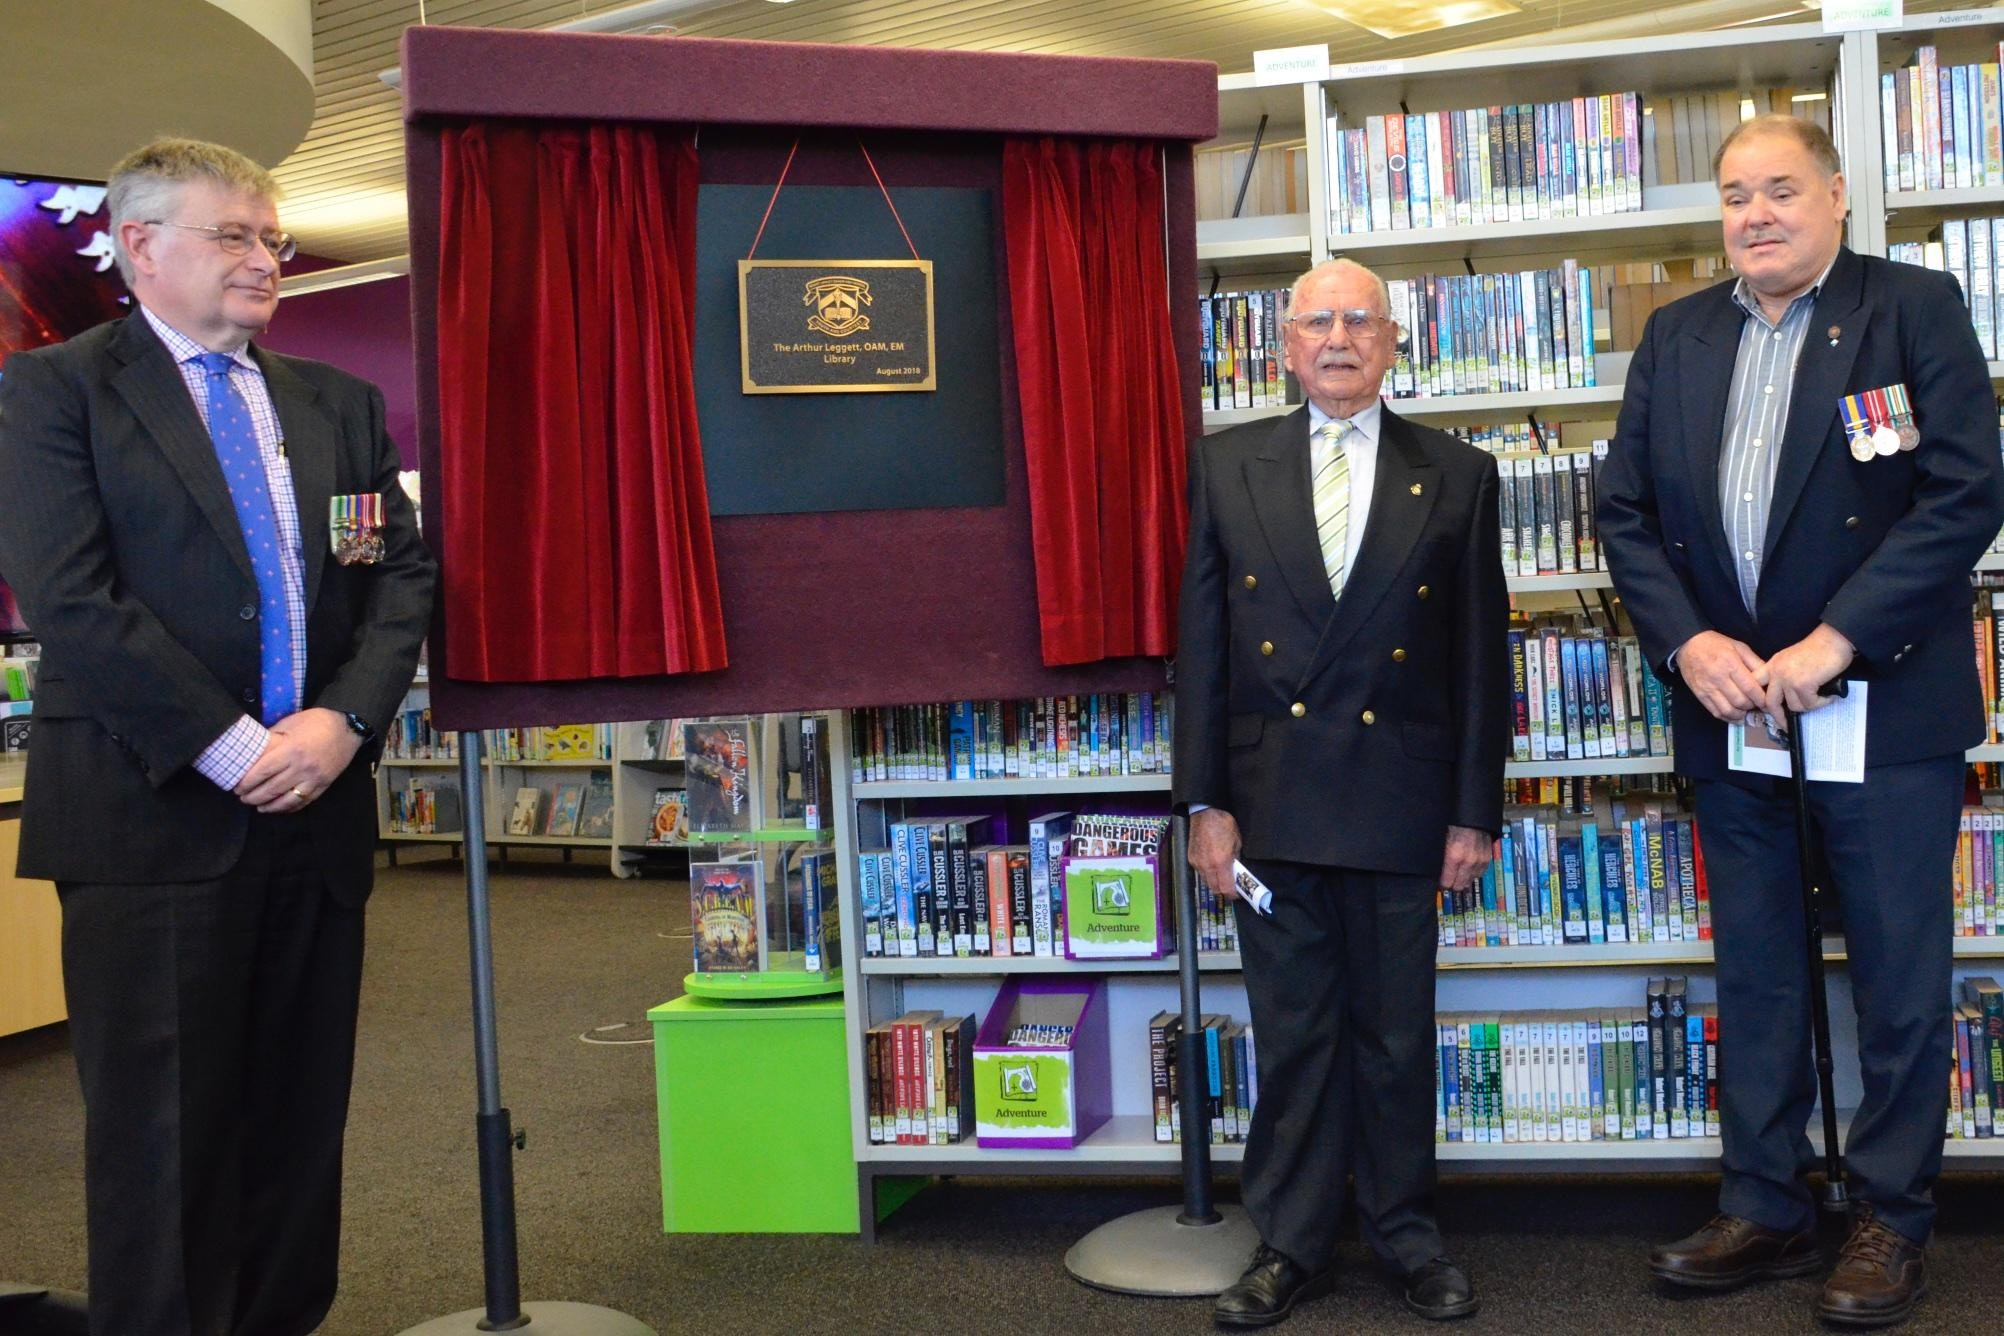 Mr Leggett (centre) unveiling the plaque with (left) Mr Milton Butcher substantive Principal Mount Lawley SHS and Mr Ray Galliott (right) Secretary/treasurer Ex POW Association WA